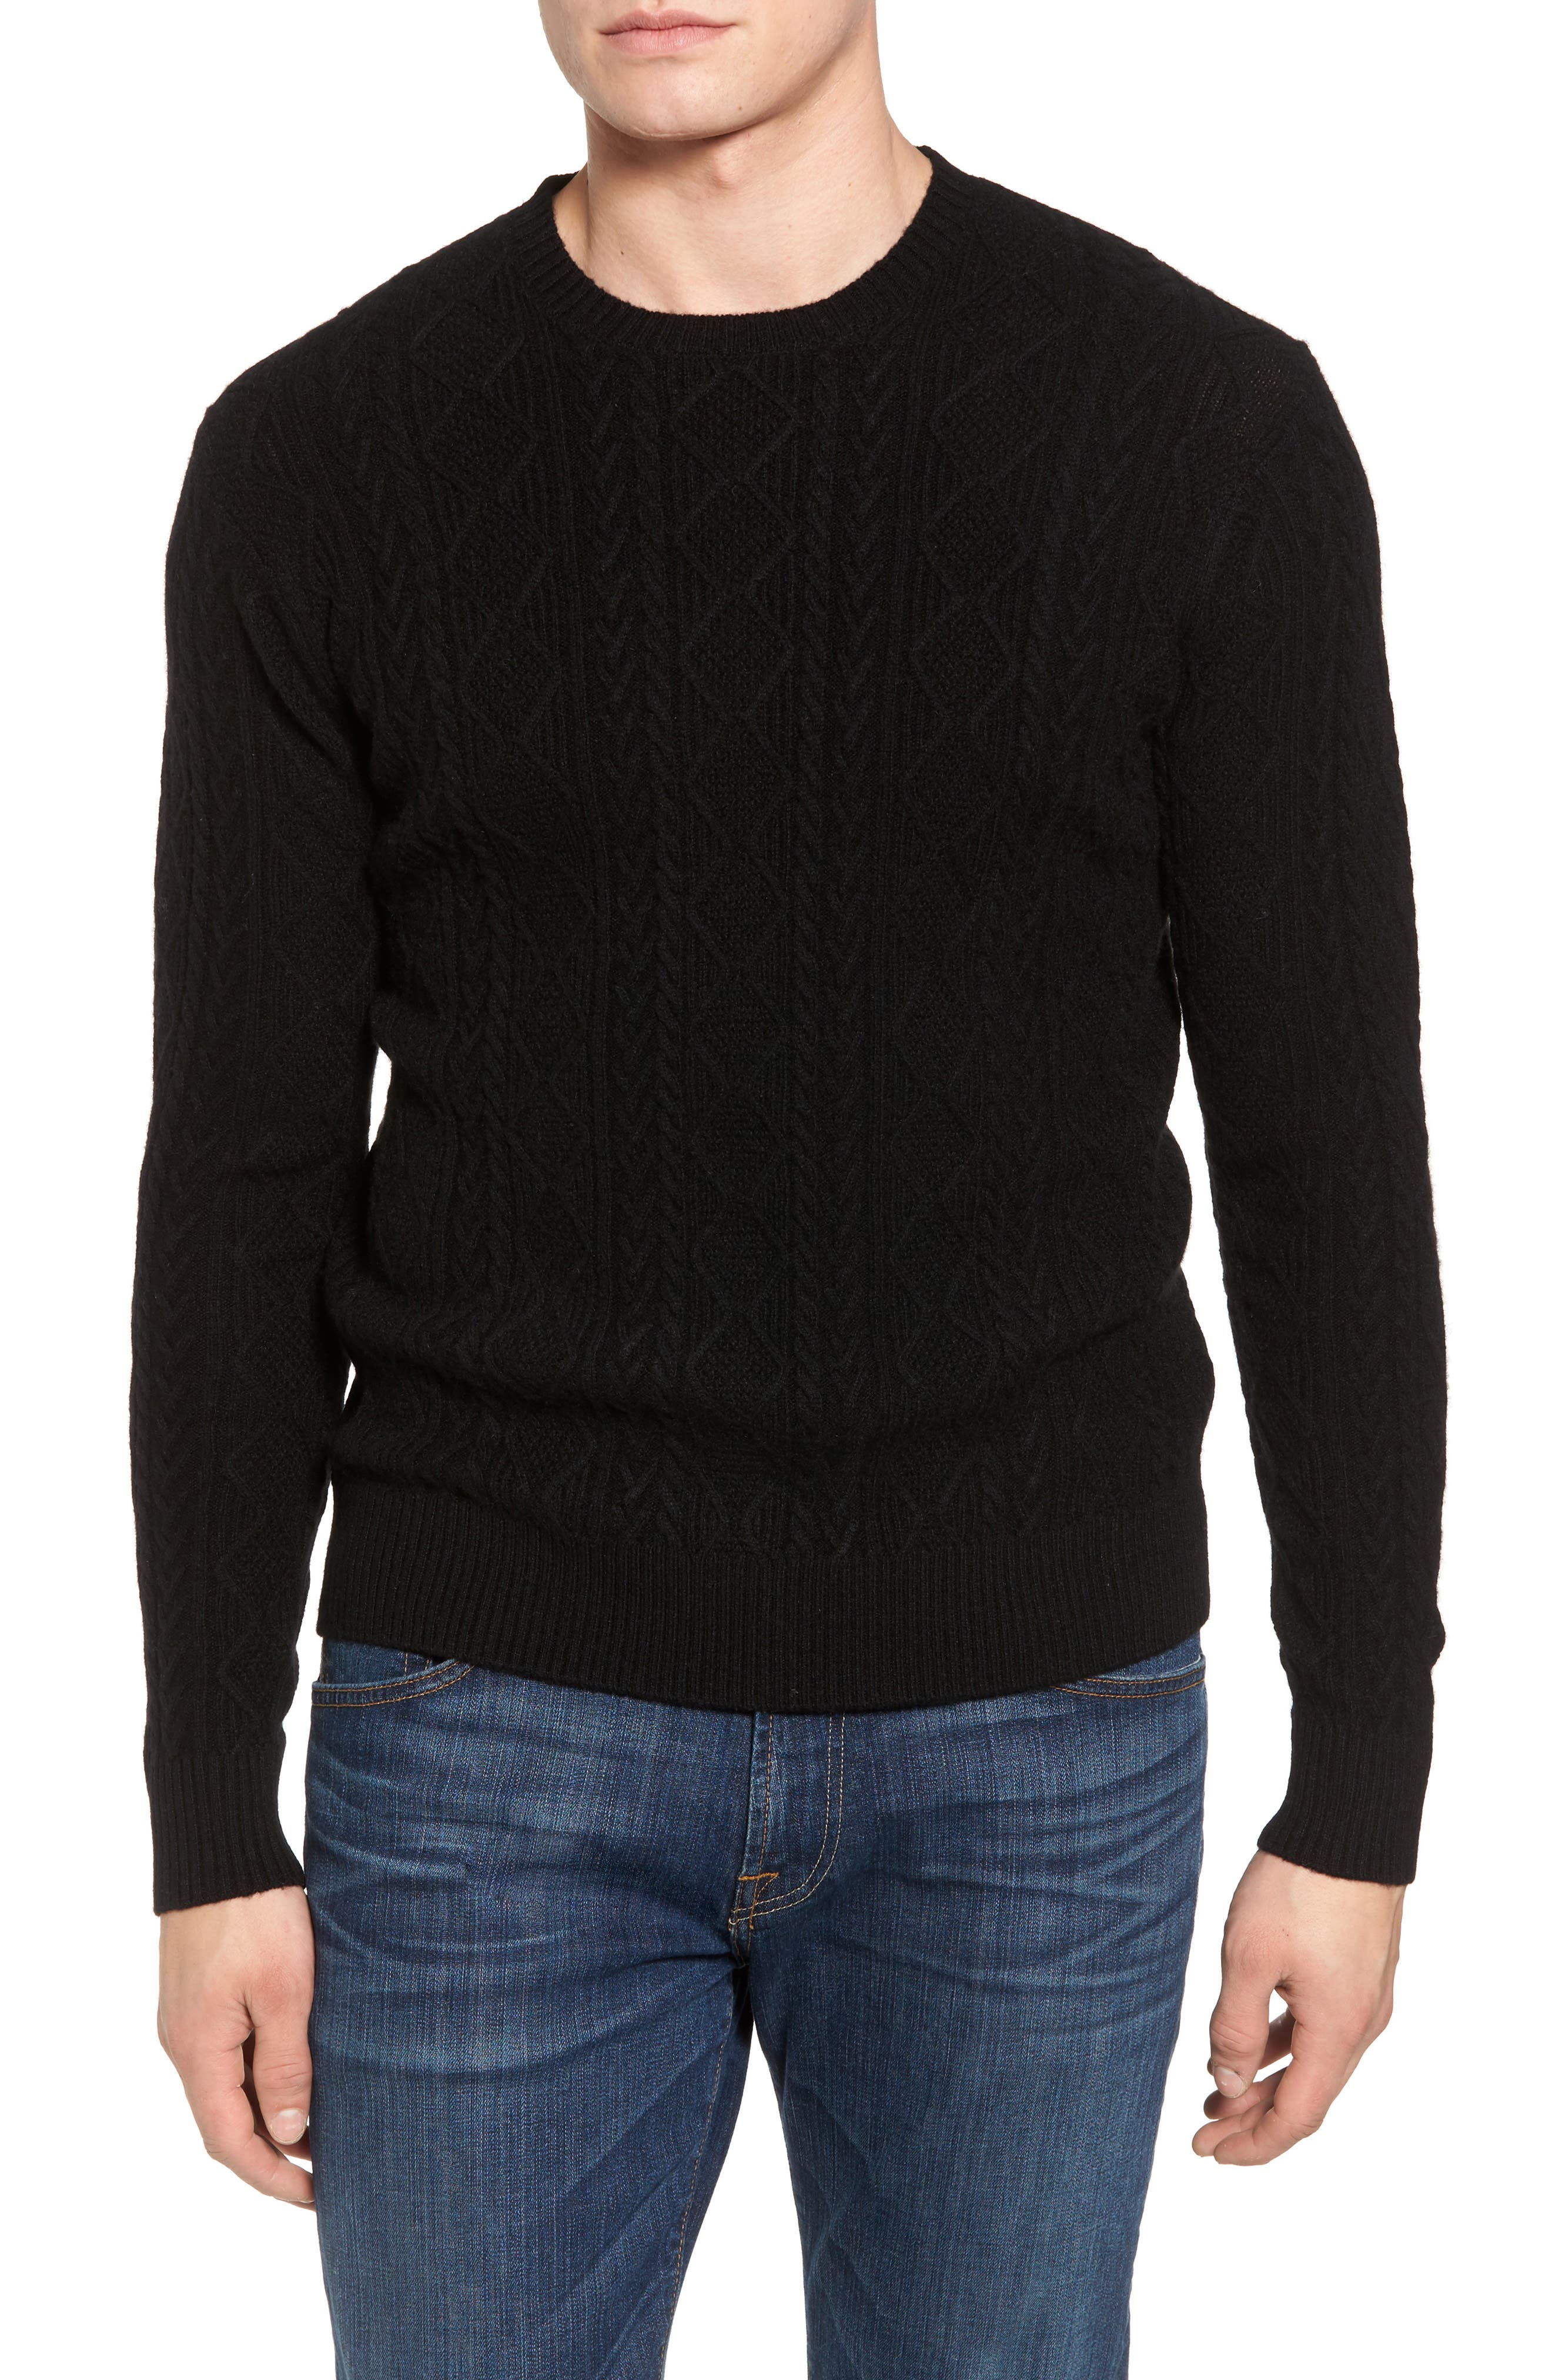 Crown Wool Blend Fisherman Sweater,                         Main,                         color, 001